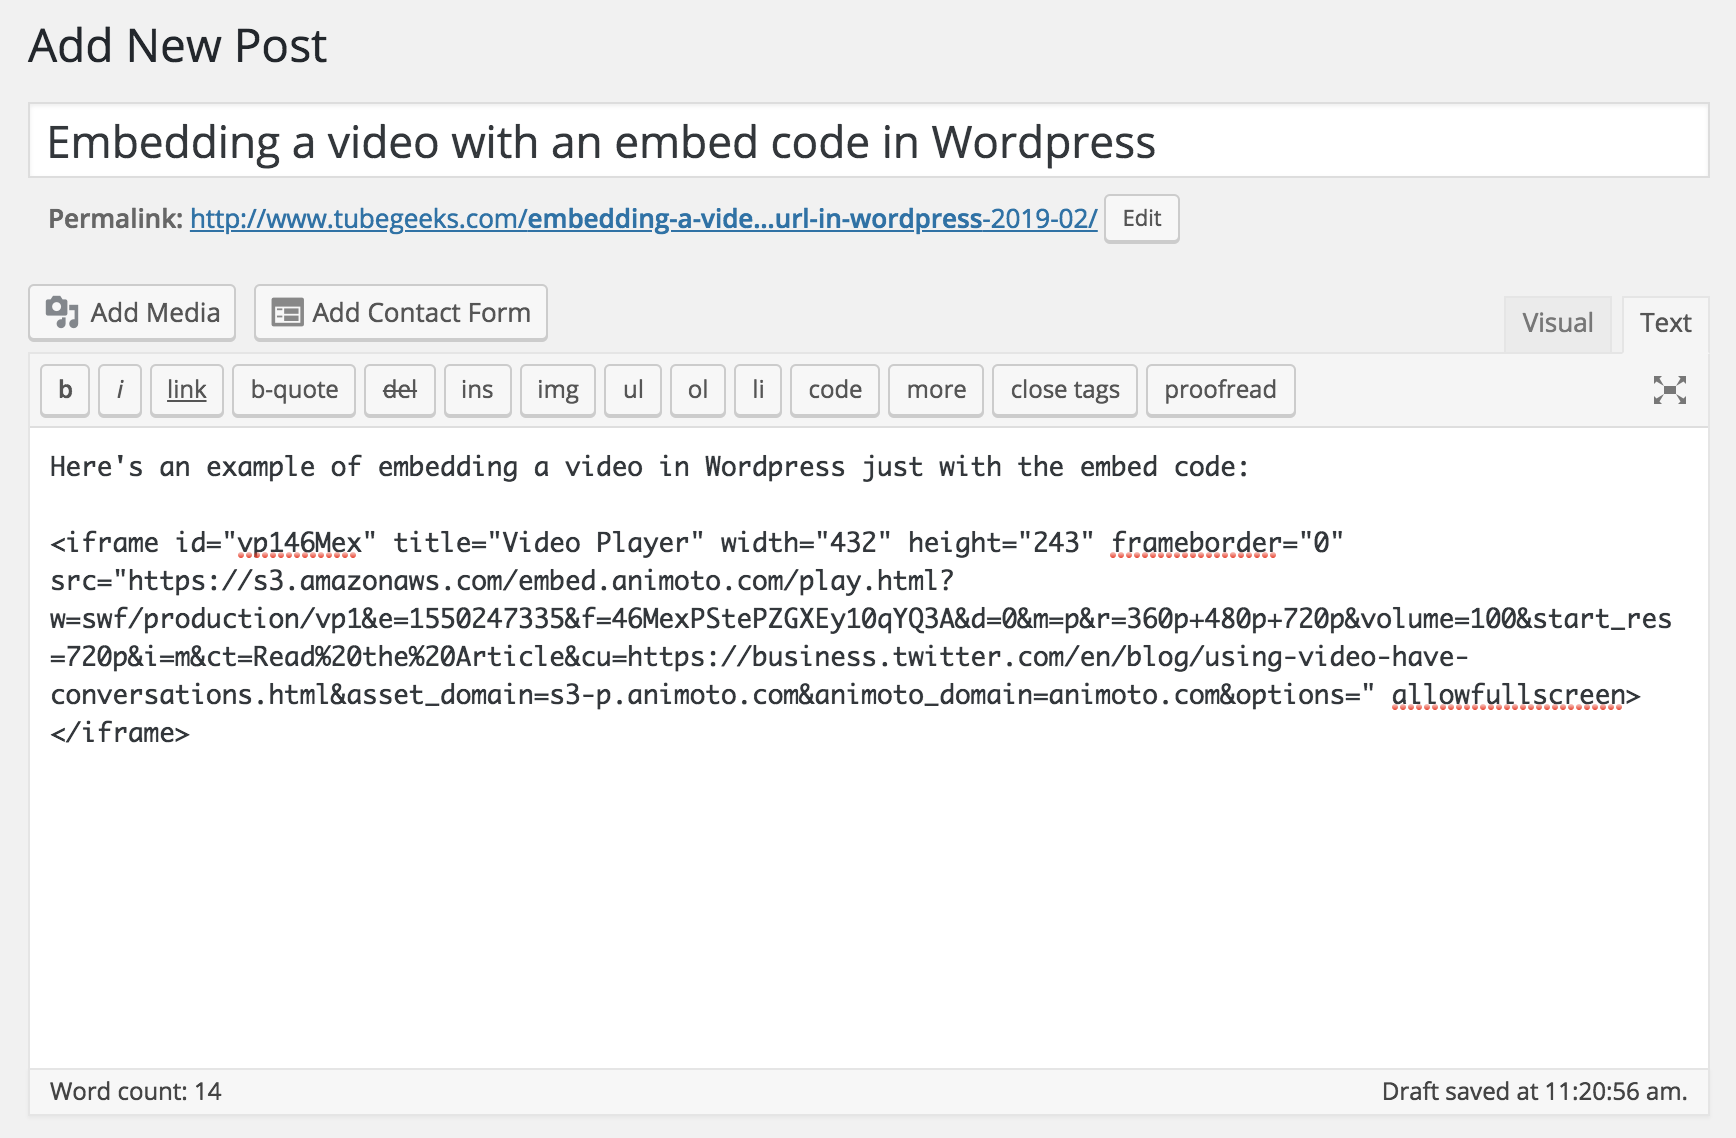 Complete Guide to Embedding Video on Your Website - Animoto